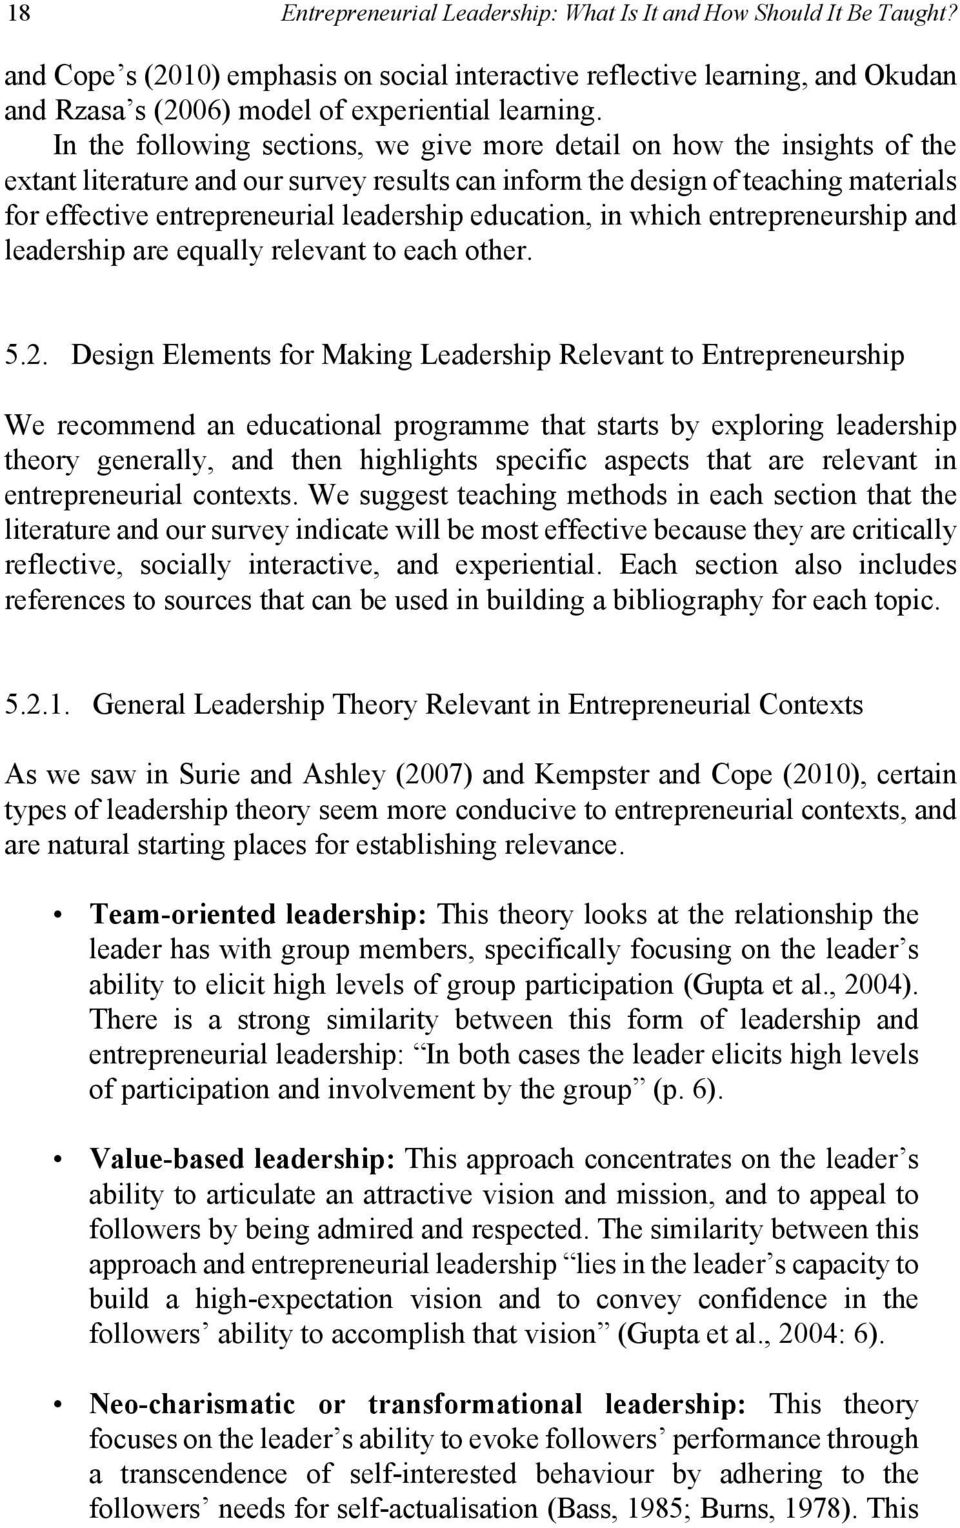 In the following sections, we give more detail on how the insights of the extant literature and our survey results can inform the design of teaching materials for effective entrepreneurial leadership